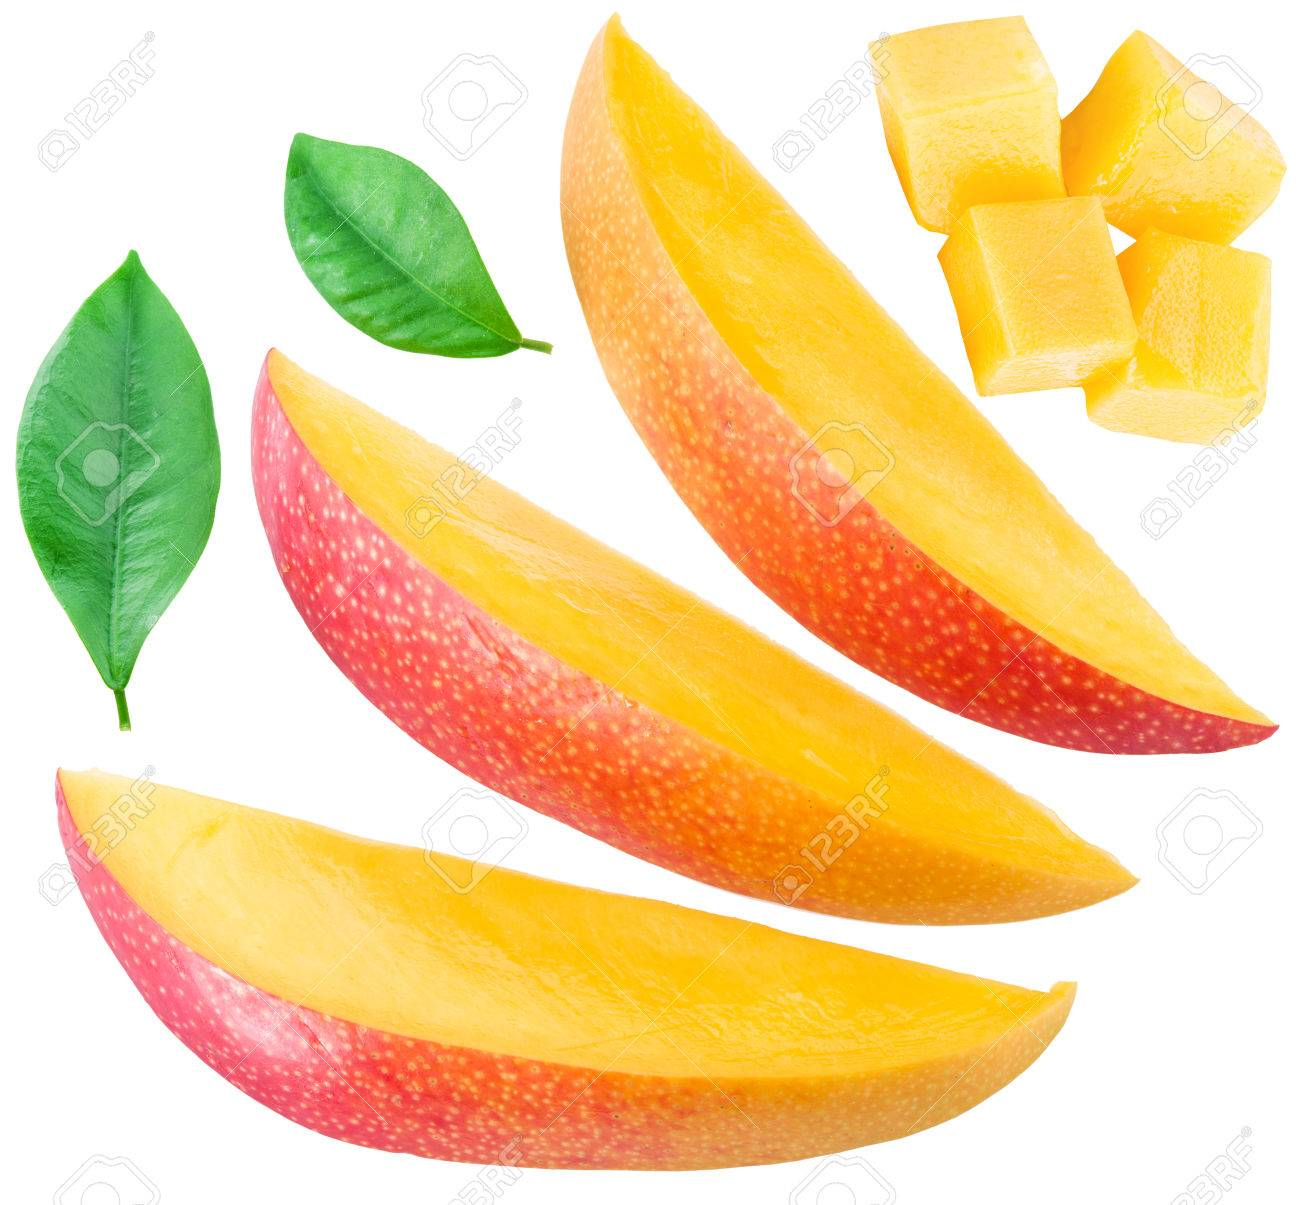 Slices of mango fruit and leaves over white. Standard-Bild - 53788943